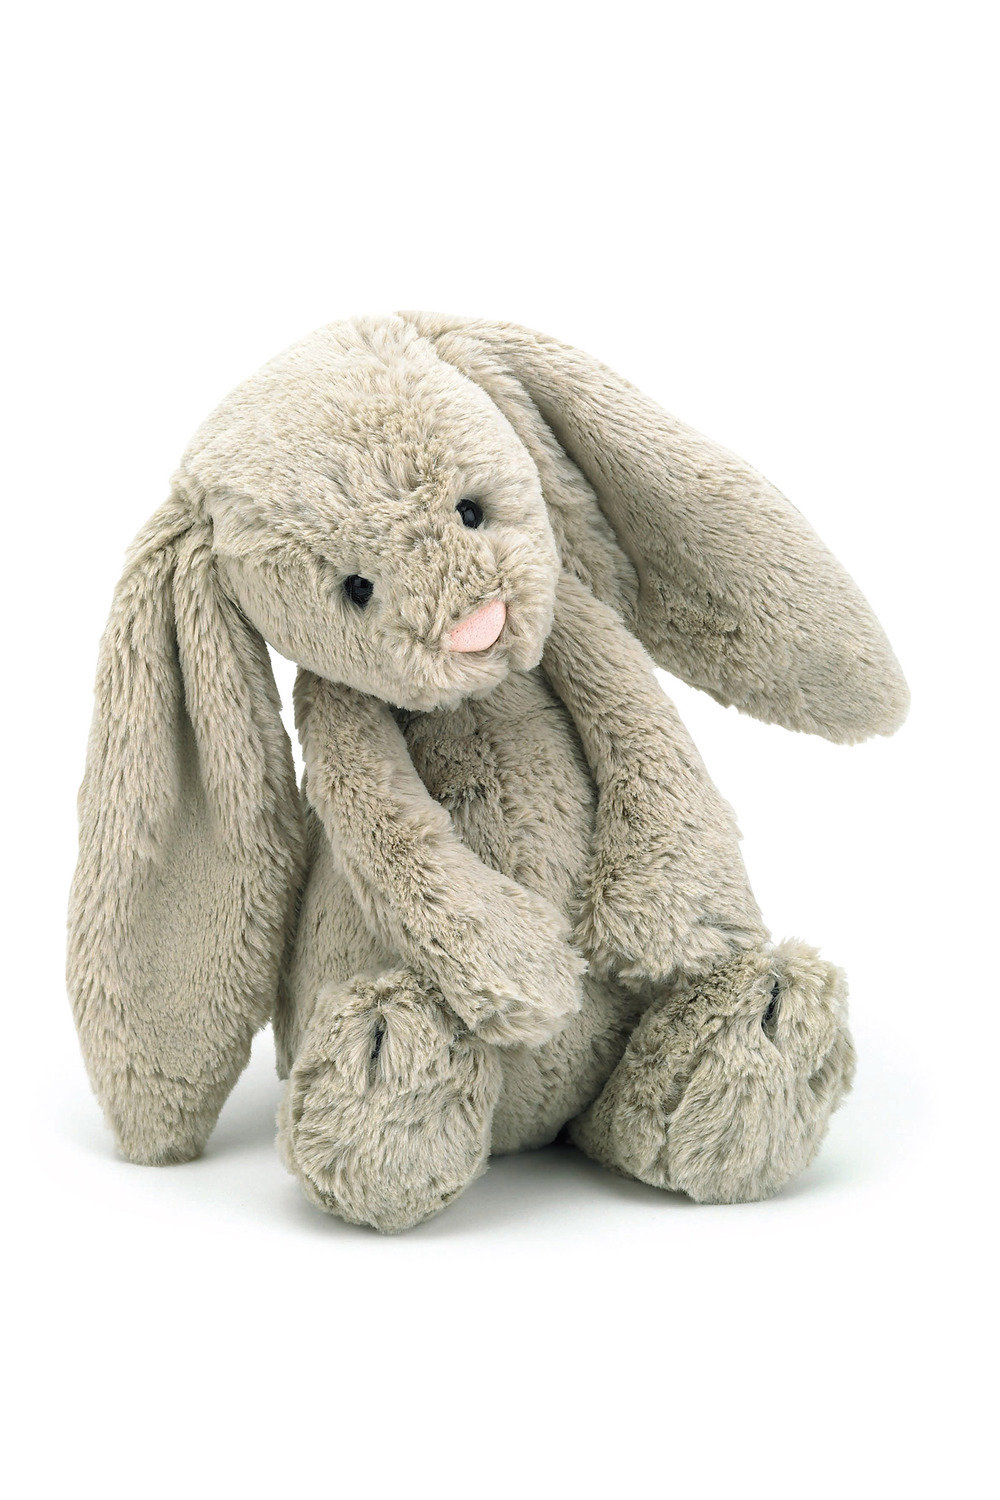 Image result for jellycat bunny